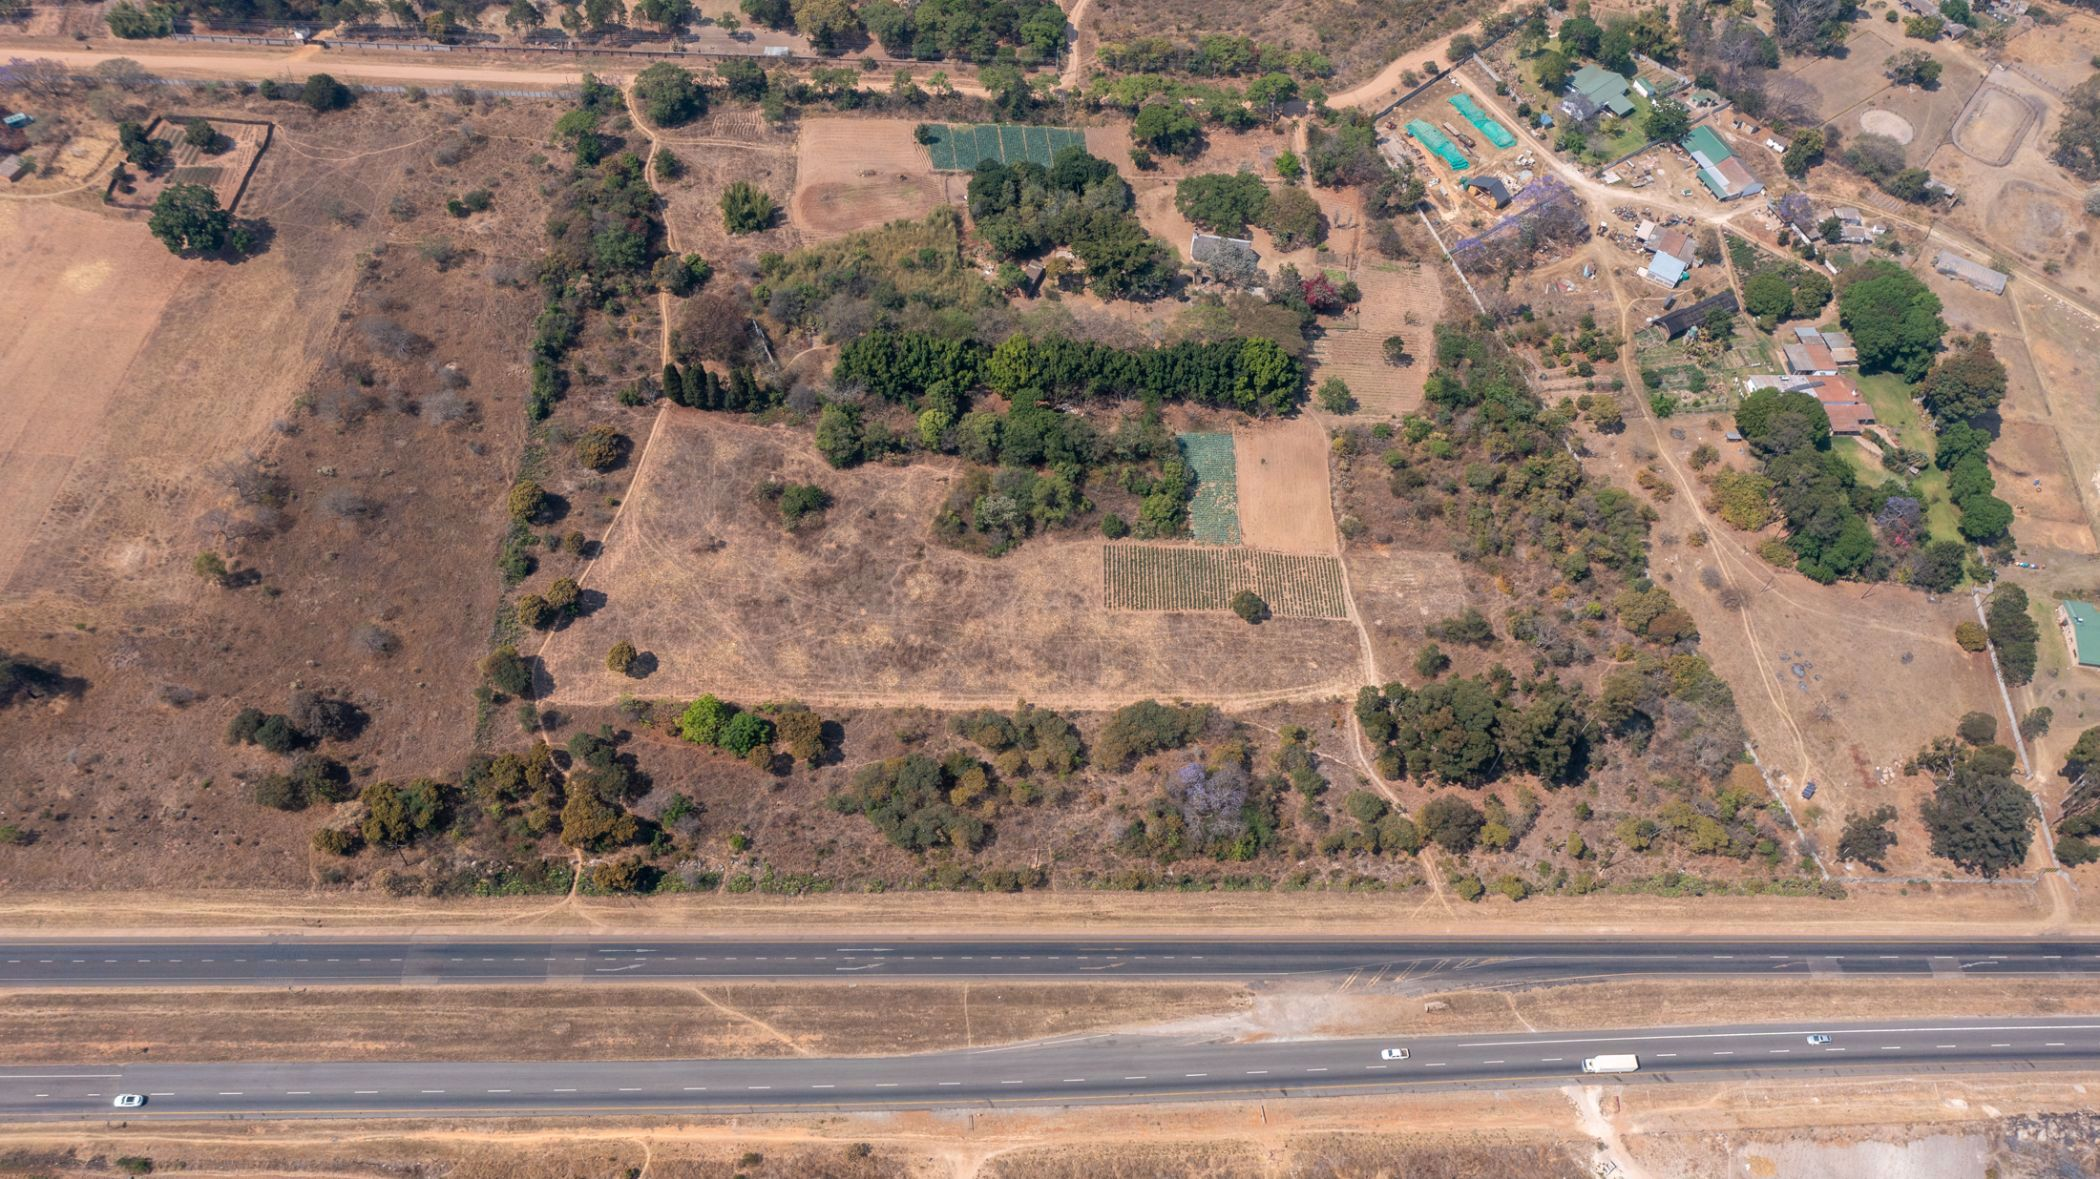 60753 m² commercial vacant land for sale in Harare (Zimbabwe)